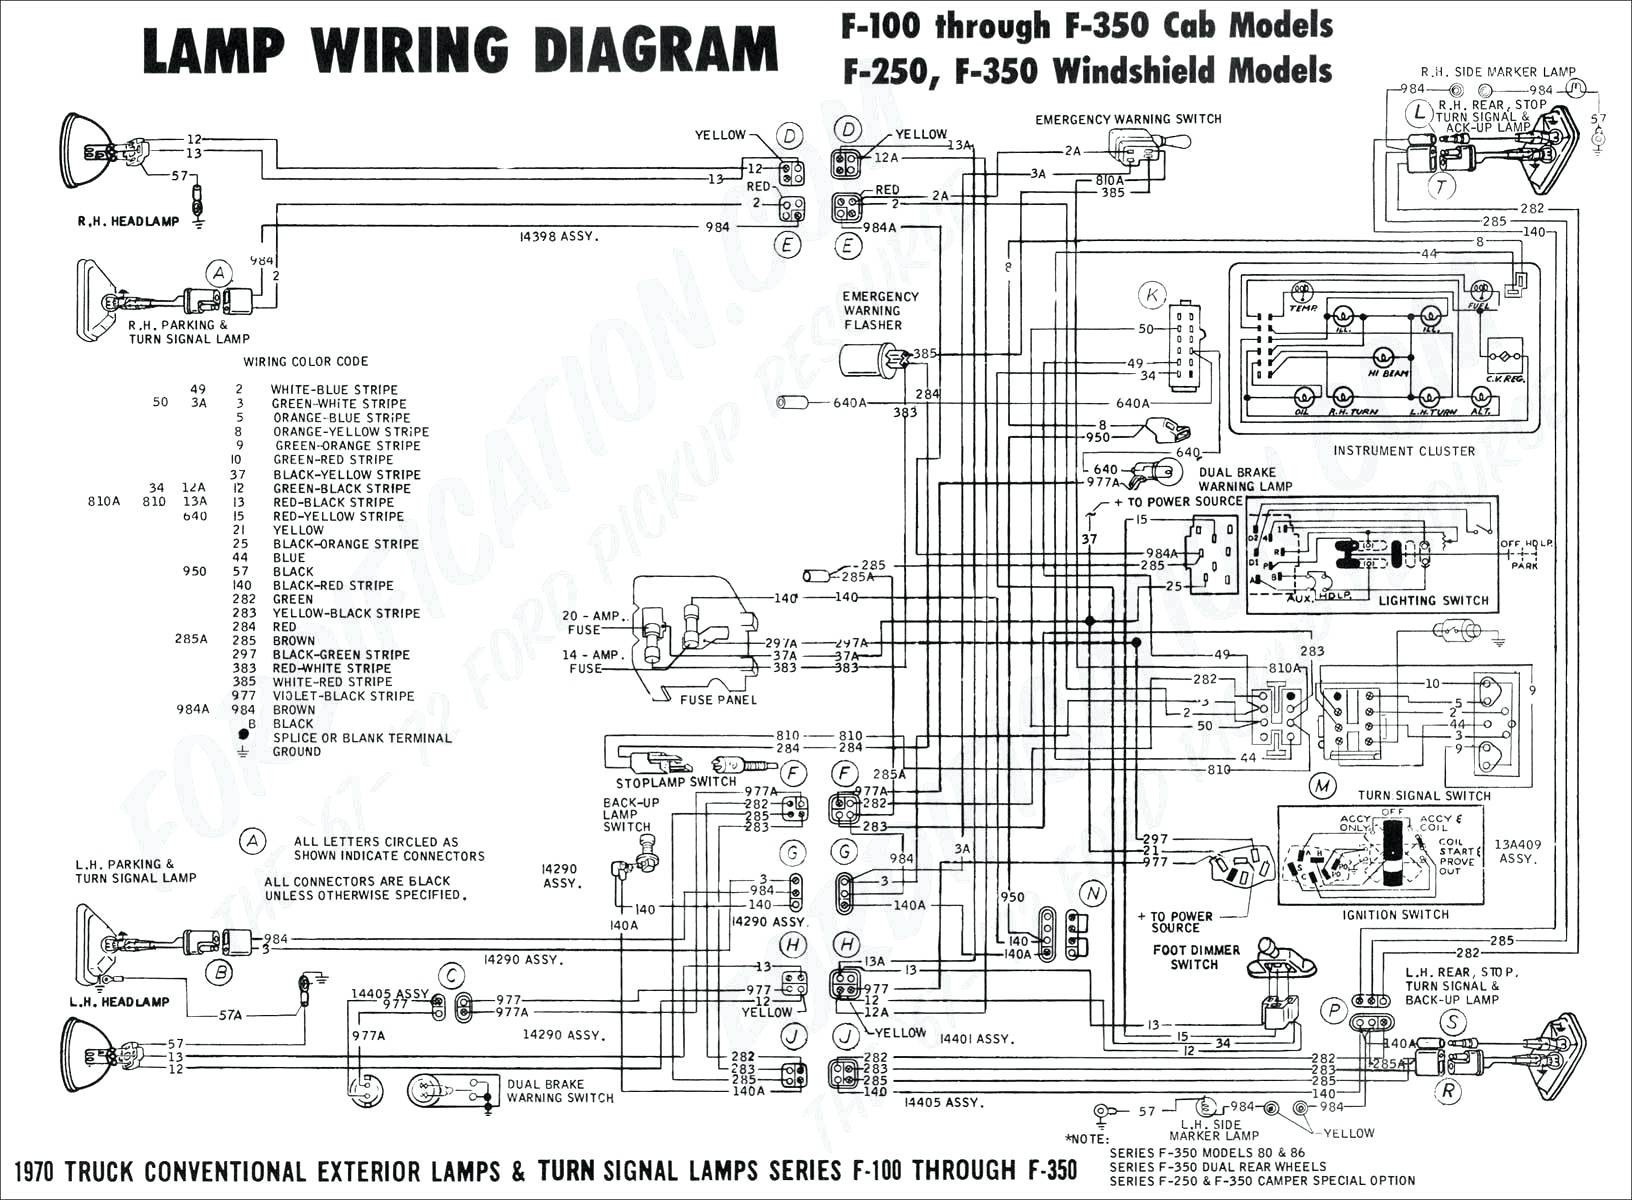 Get 2001 Ford F250 Trailer Wiring Diagram Sample - 2001 Silverado Trailer Wiring Diagram